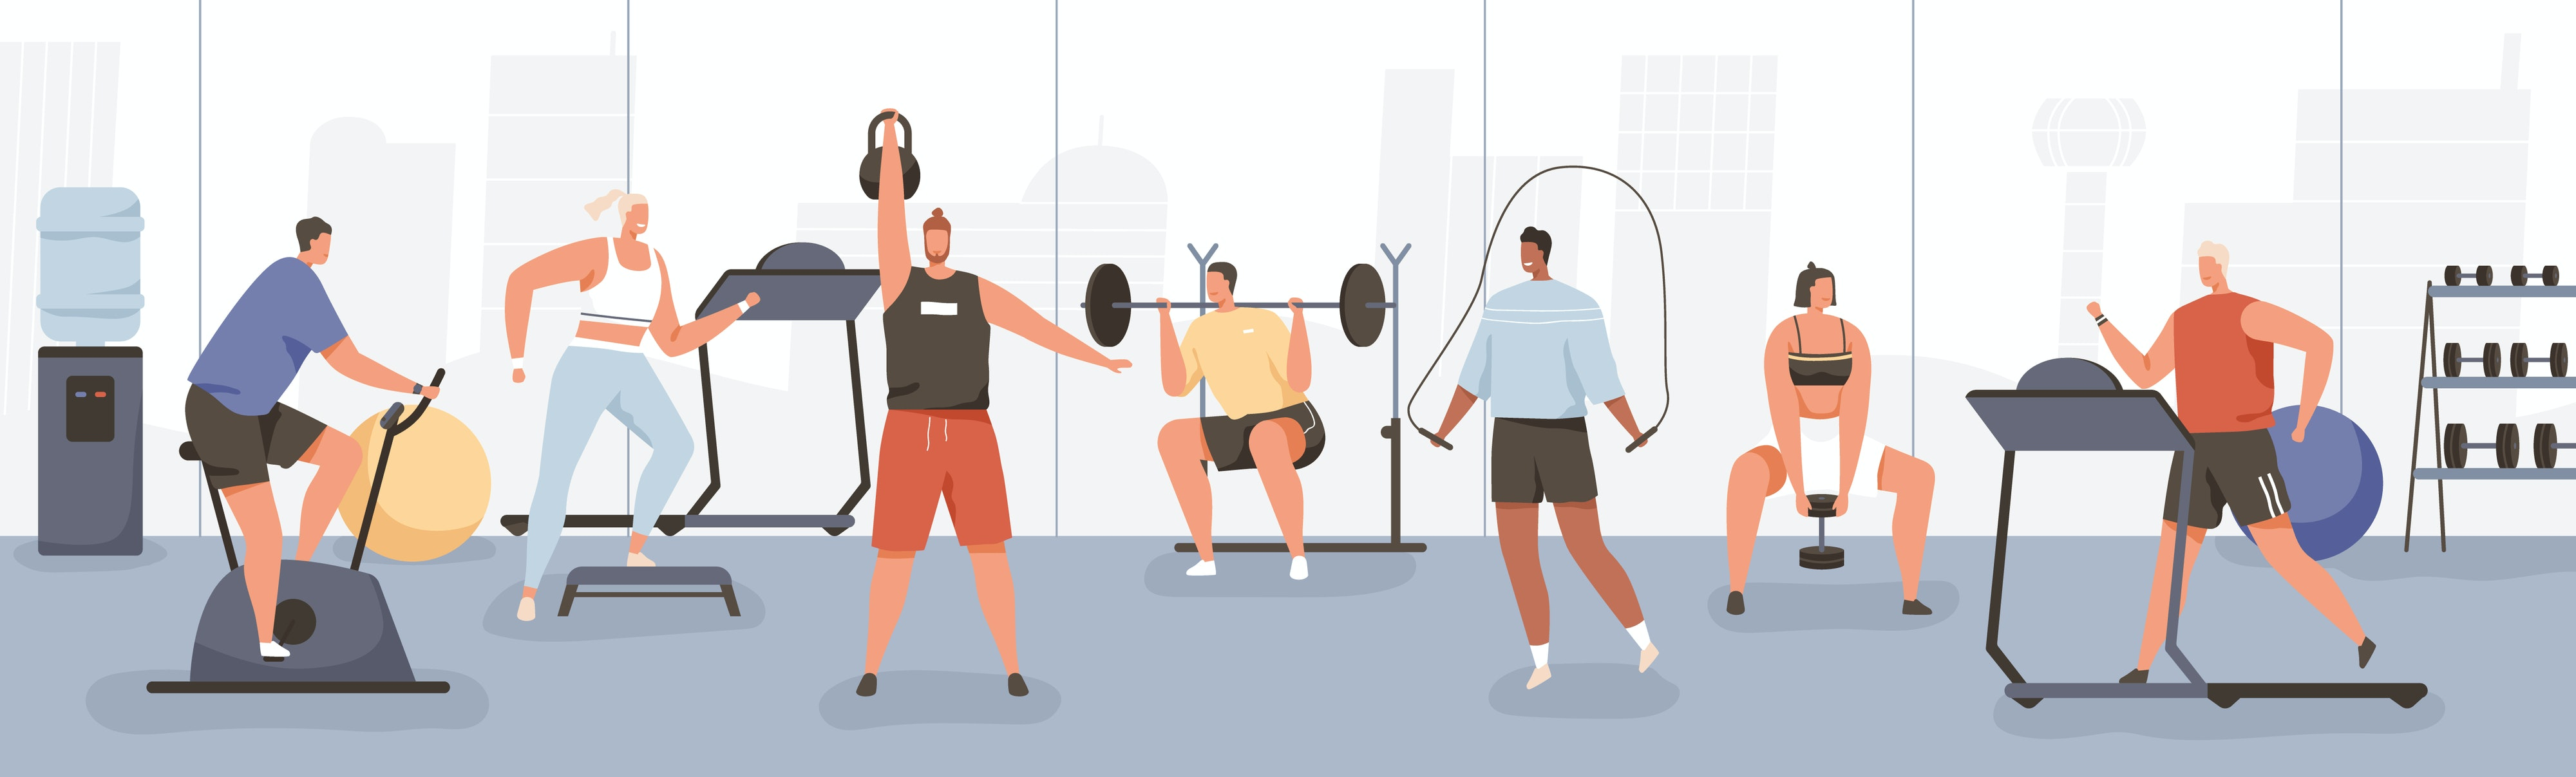 Exercise In The Time Of Coronavirus How To Work Out Safely In A Pandemic